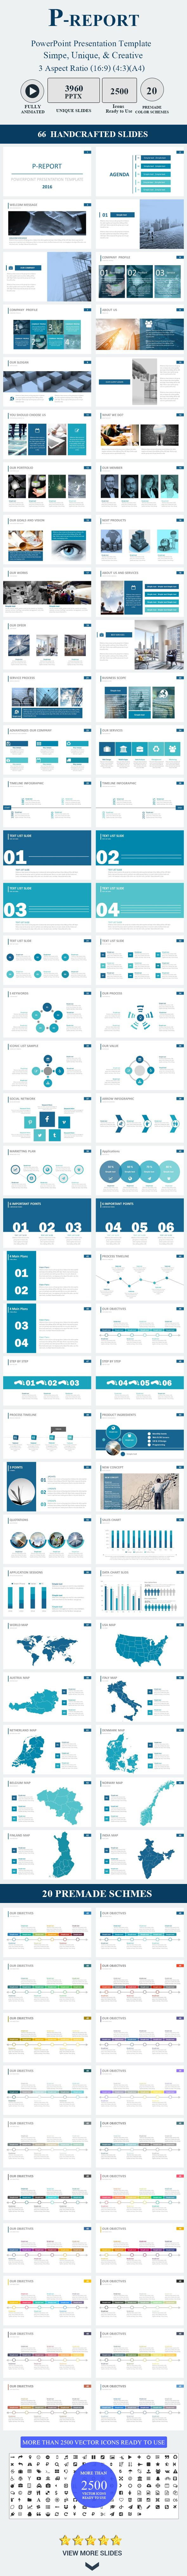 P-Report PowerPoint Presentation Template. Download here…